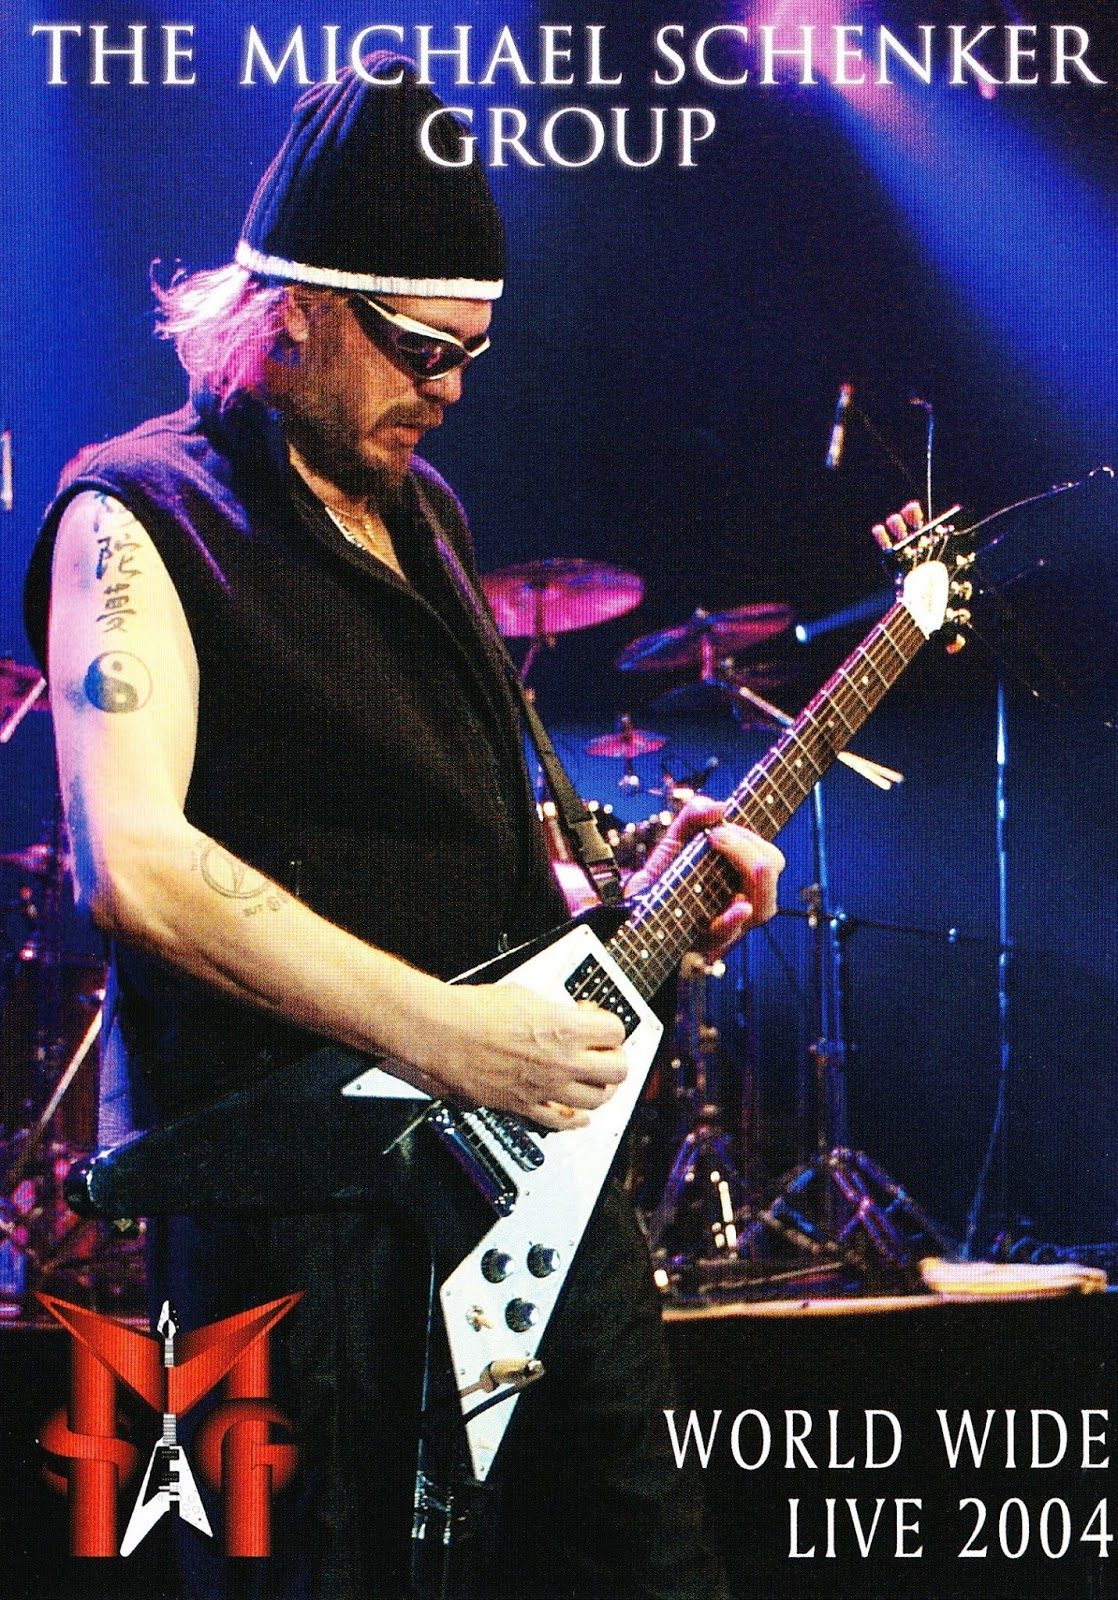 The Michael Schenker Group — World Wide Live 2004 (2004)